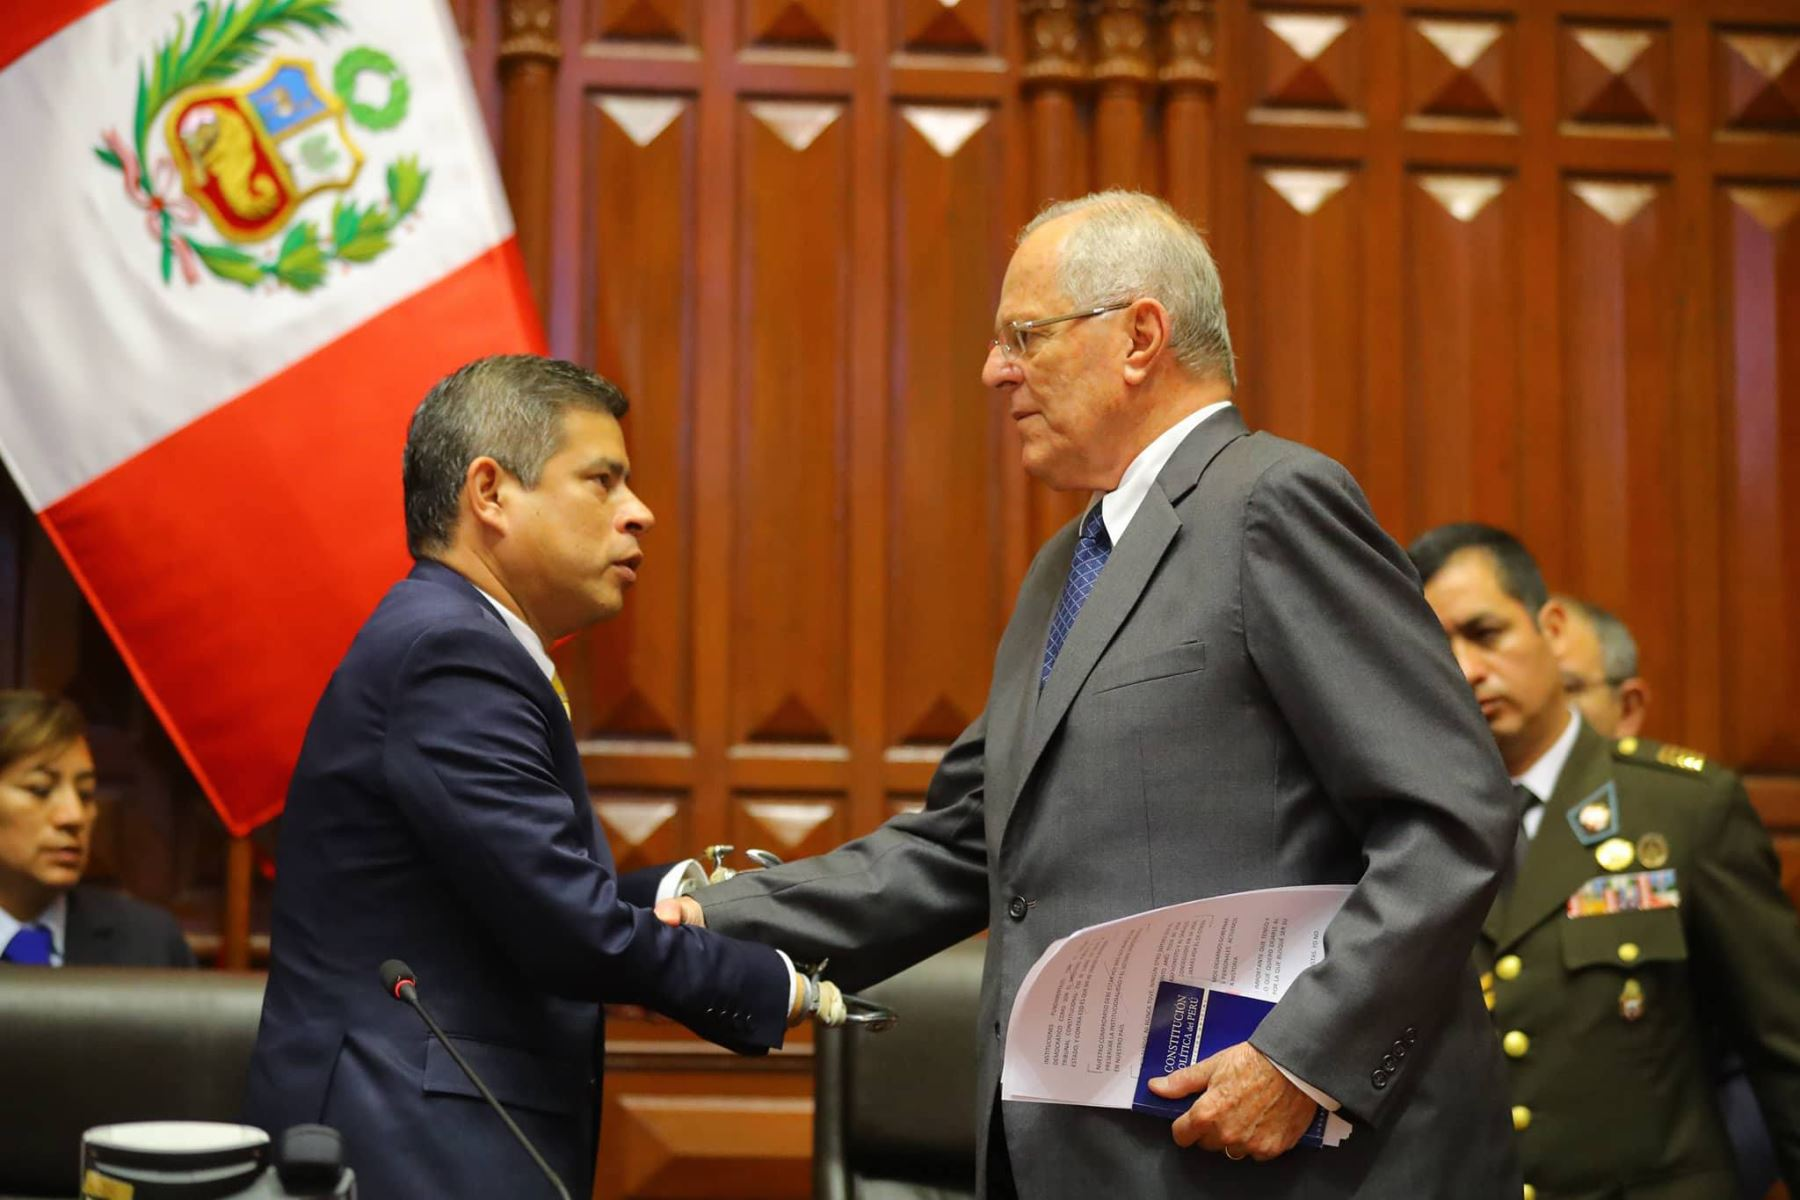 Peru president vowed to free Fujimori to win support, says a lawmaker